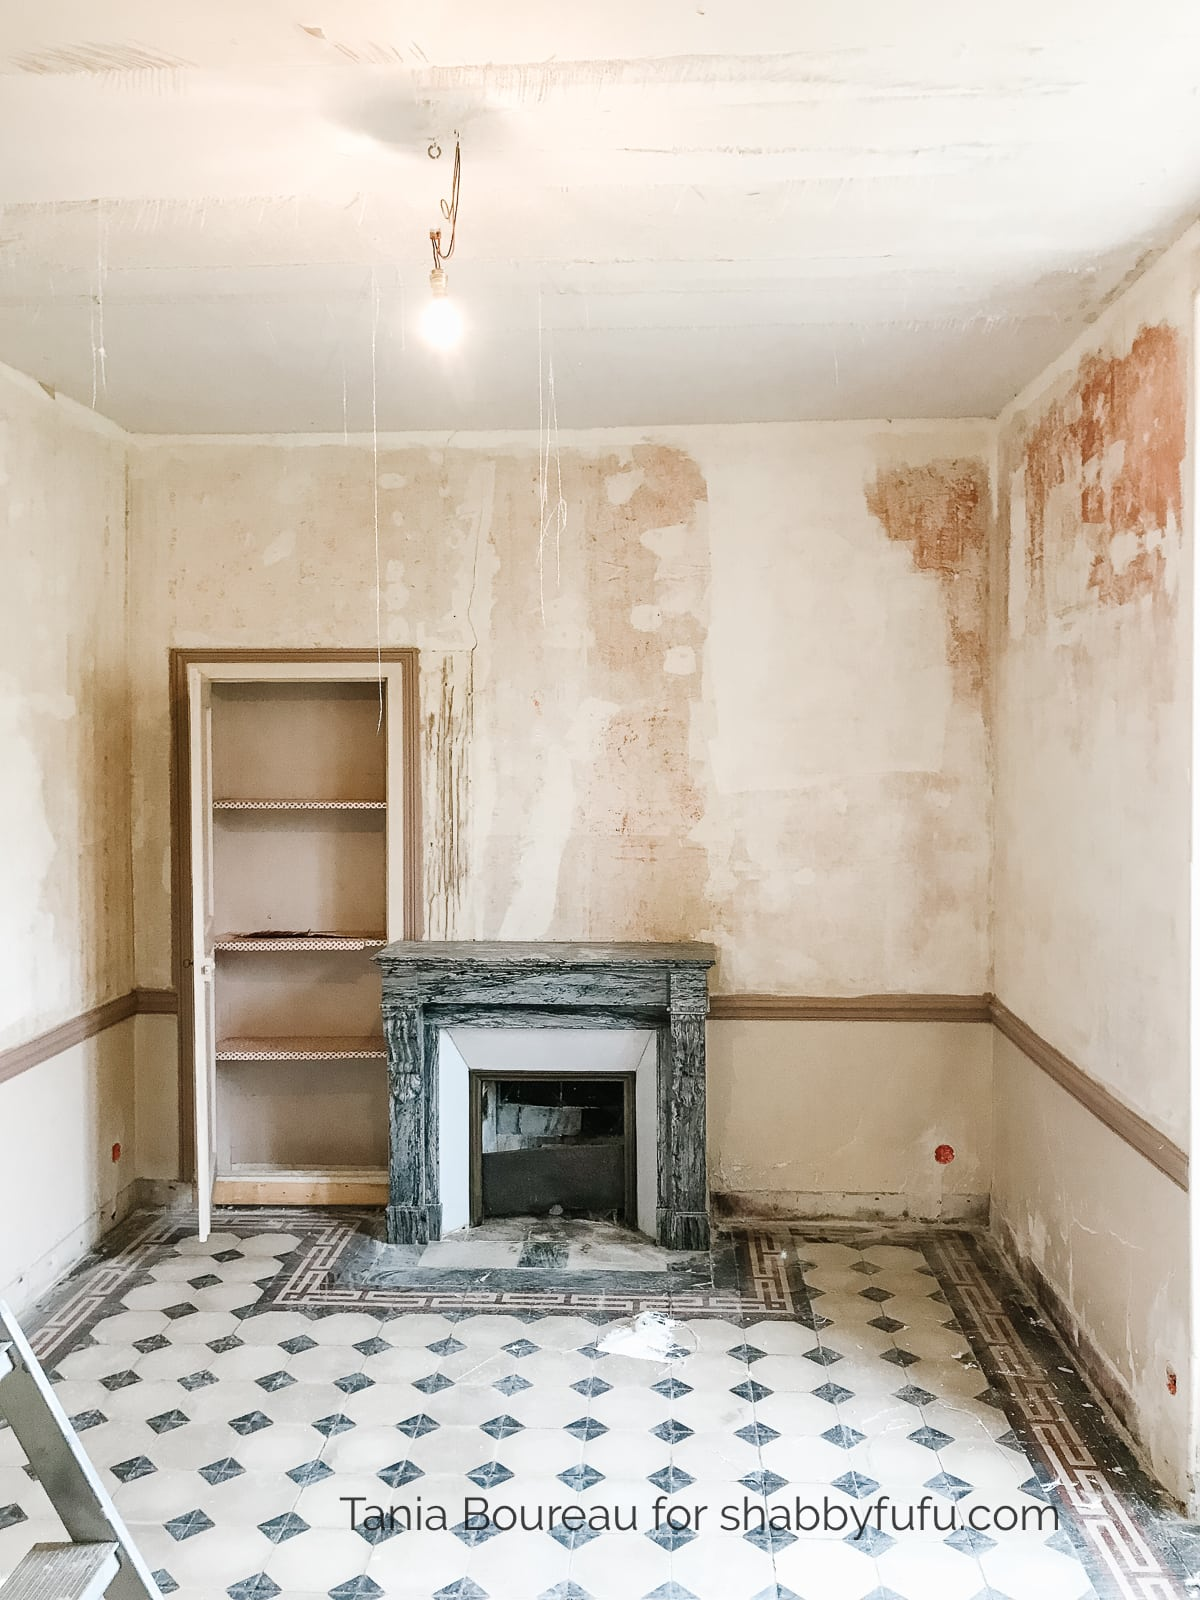 renovating an old home in France